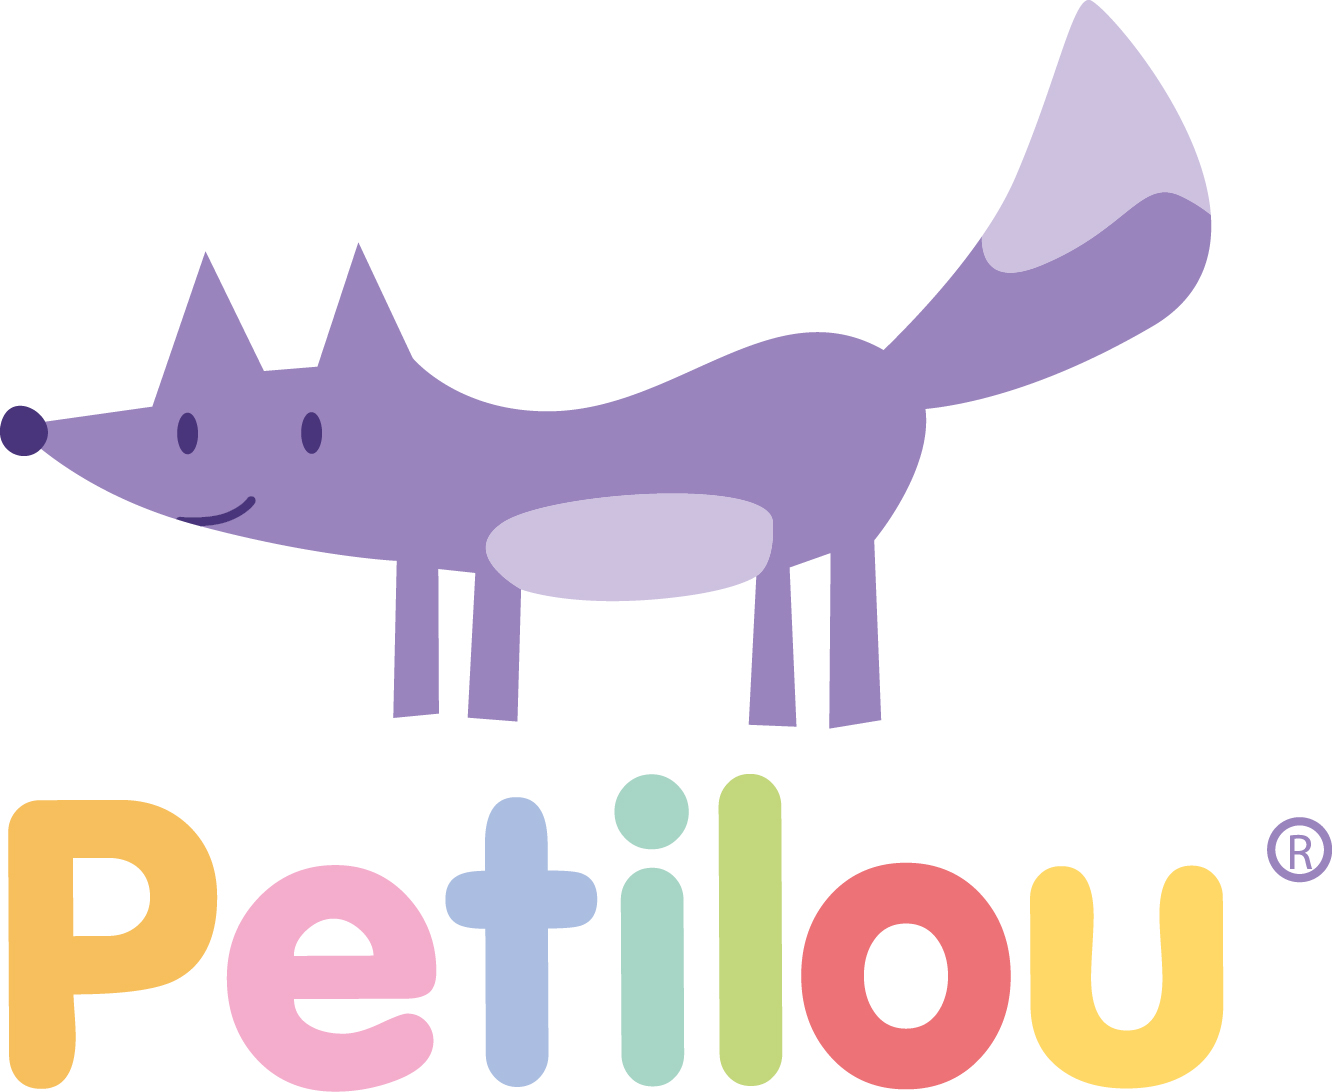 Le Toy Van Petitlou